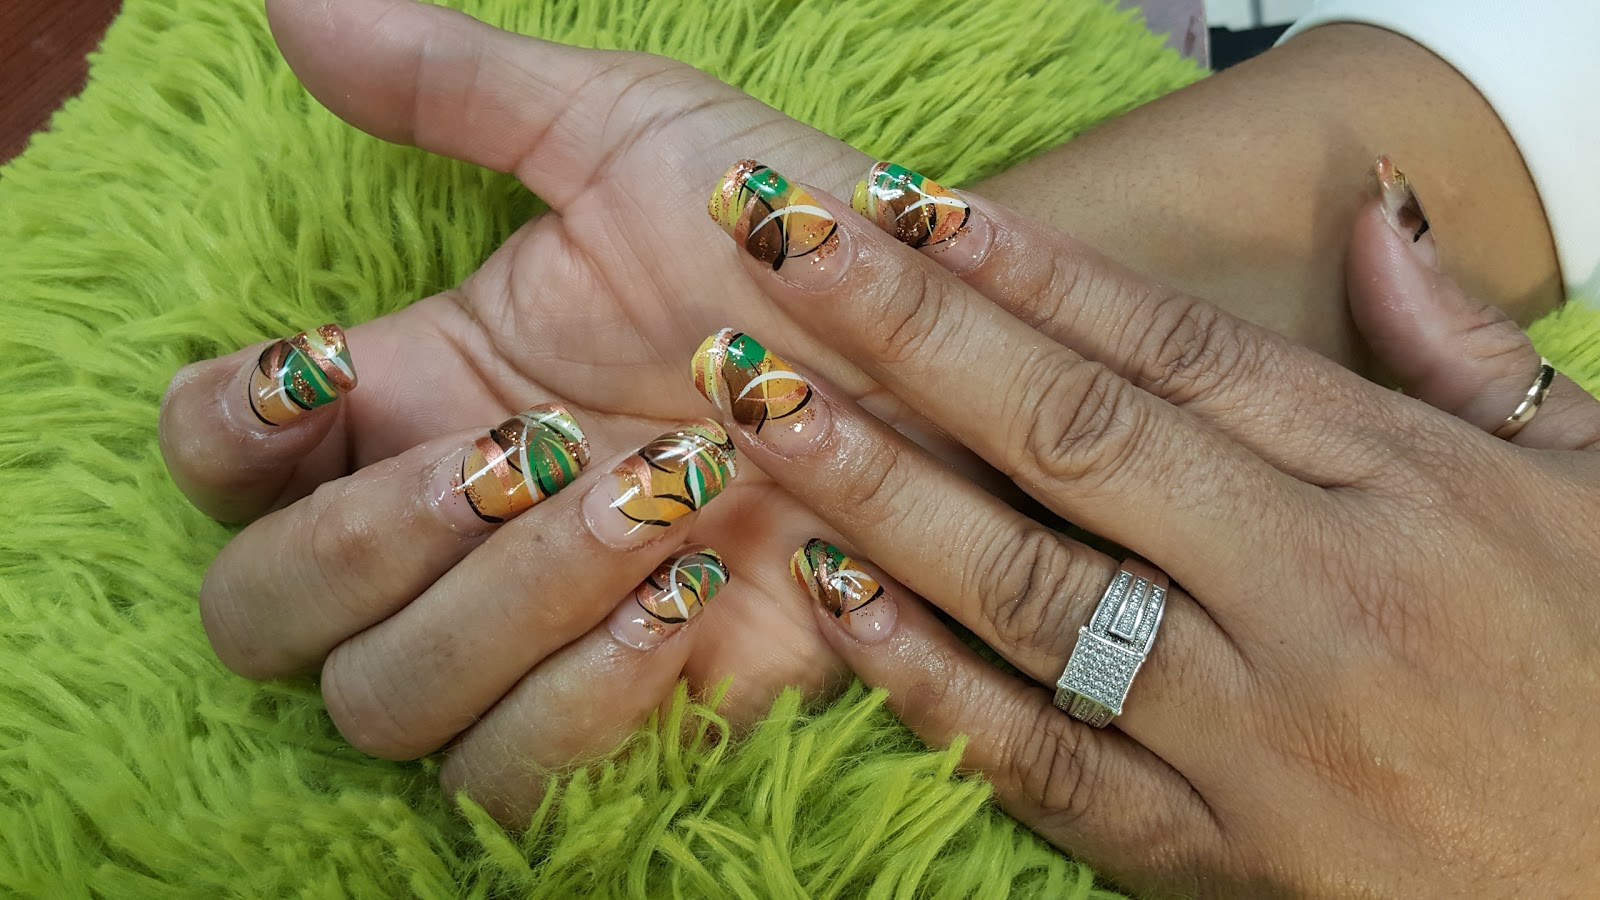 K Nails, 4655 Monticello Avenue, Williamsburg, Reviews and ...